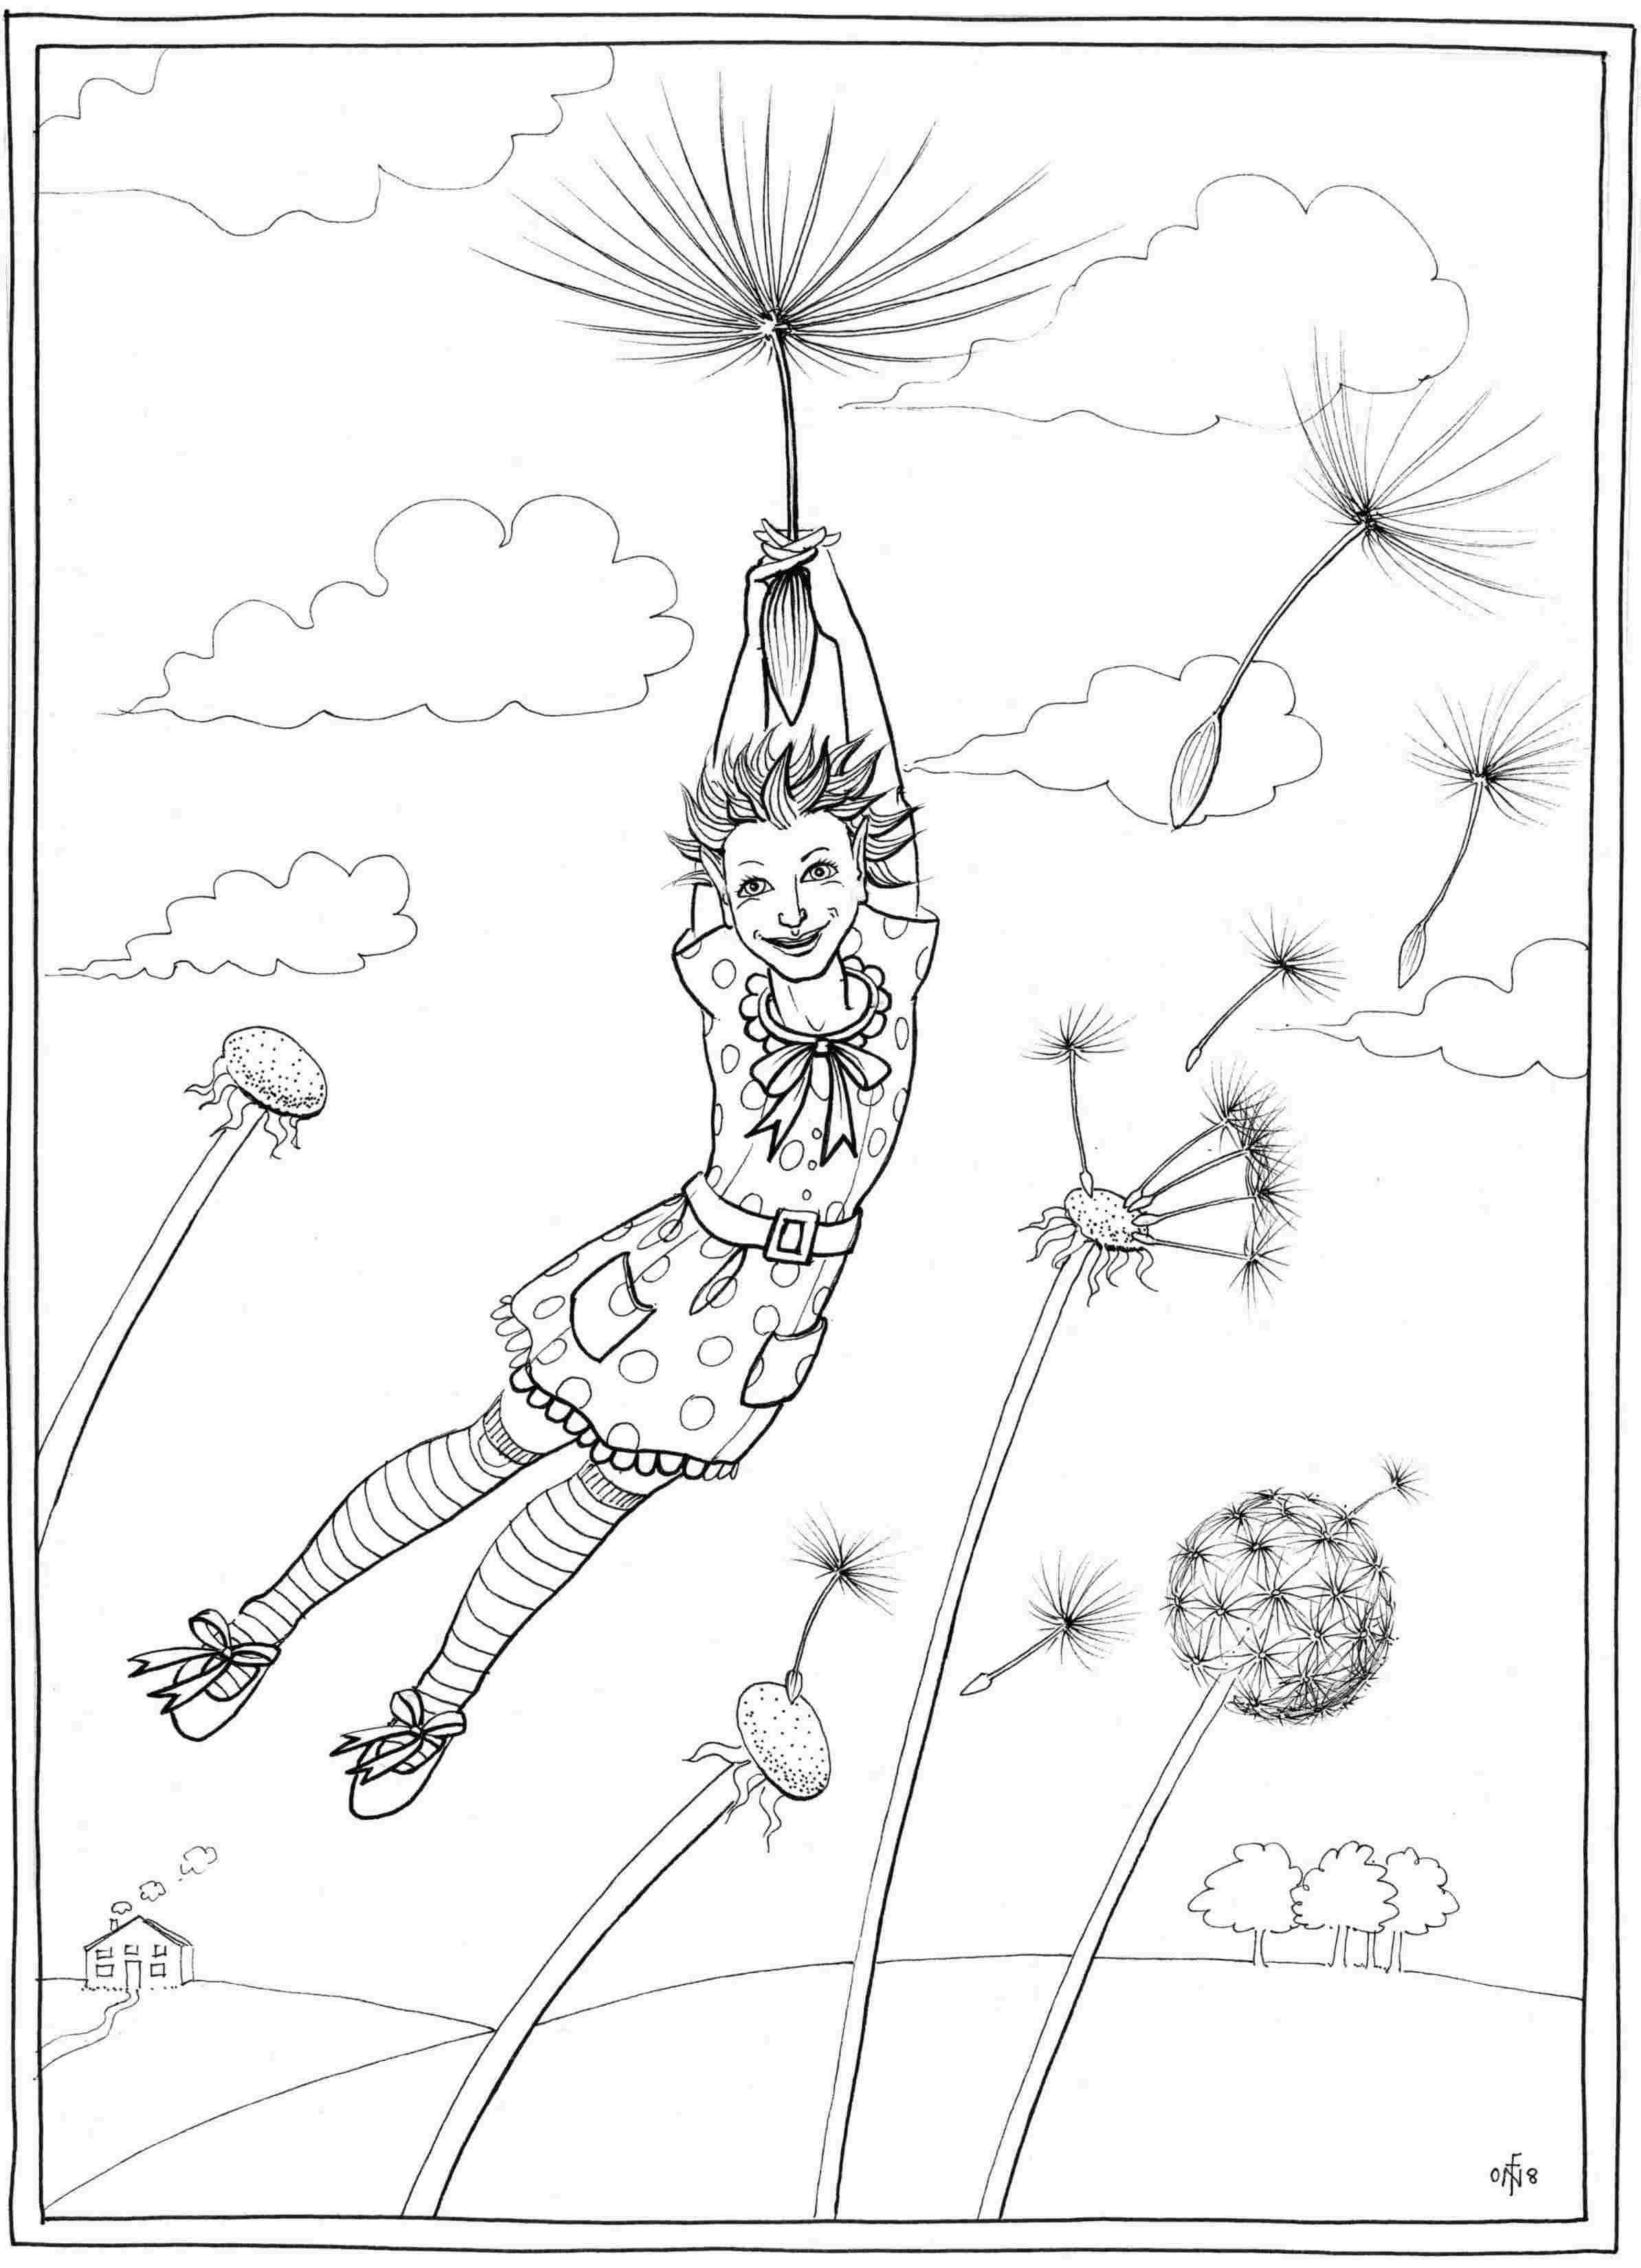 Blowing dandelion coloring pages coloring coloring pages for Dandelion coloring page